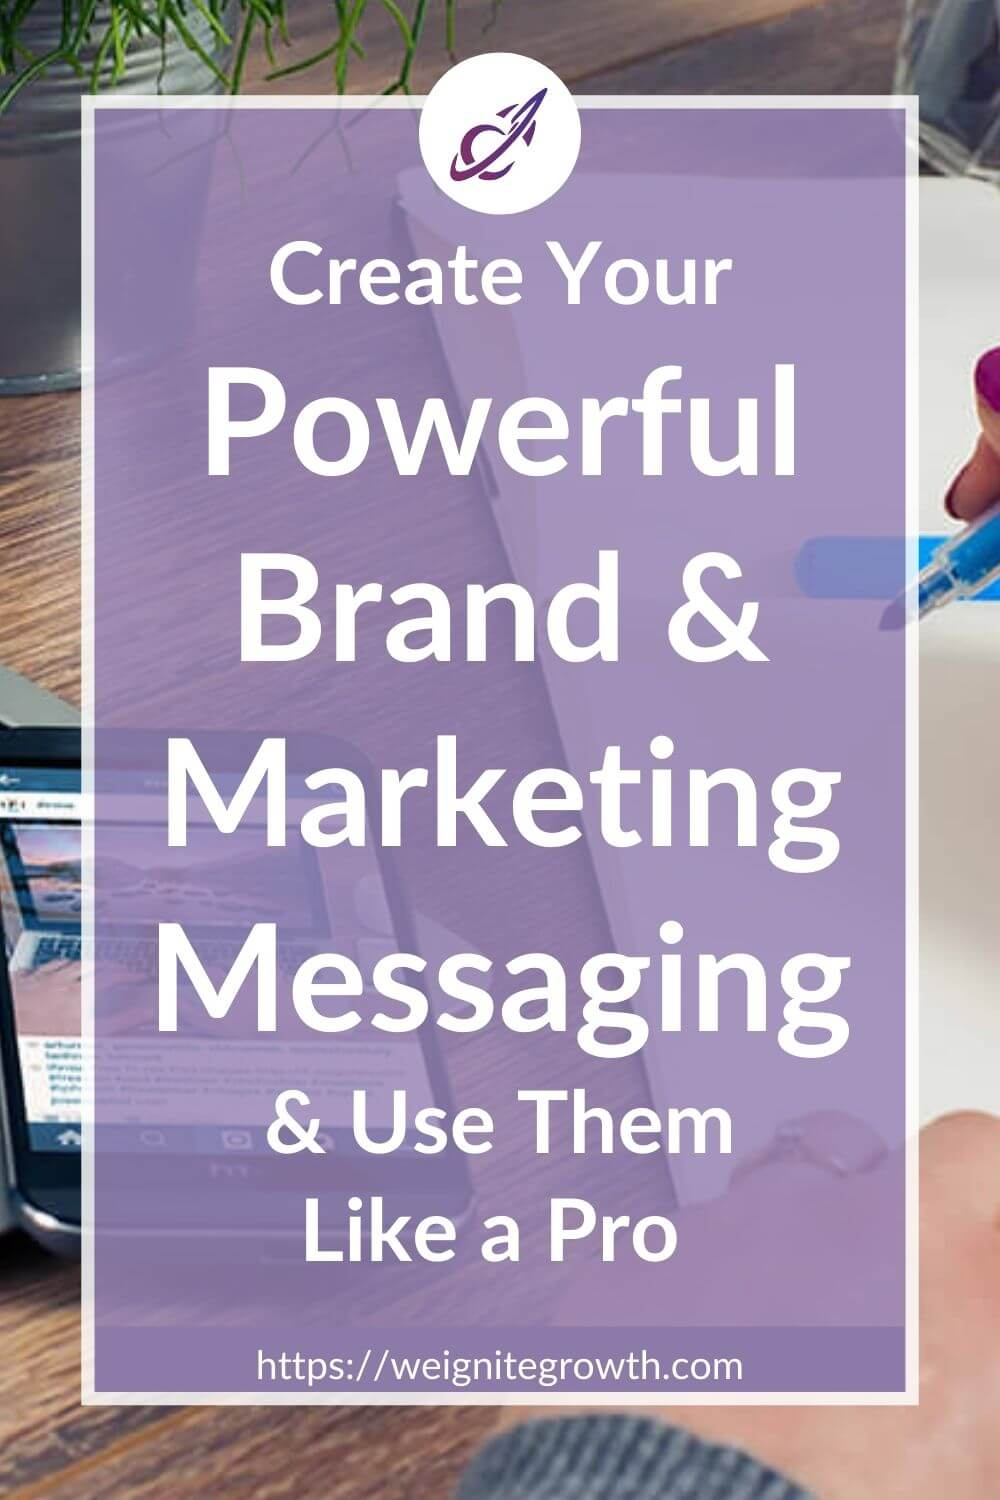 How to Create Your Brand & Marketing Messaging